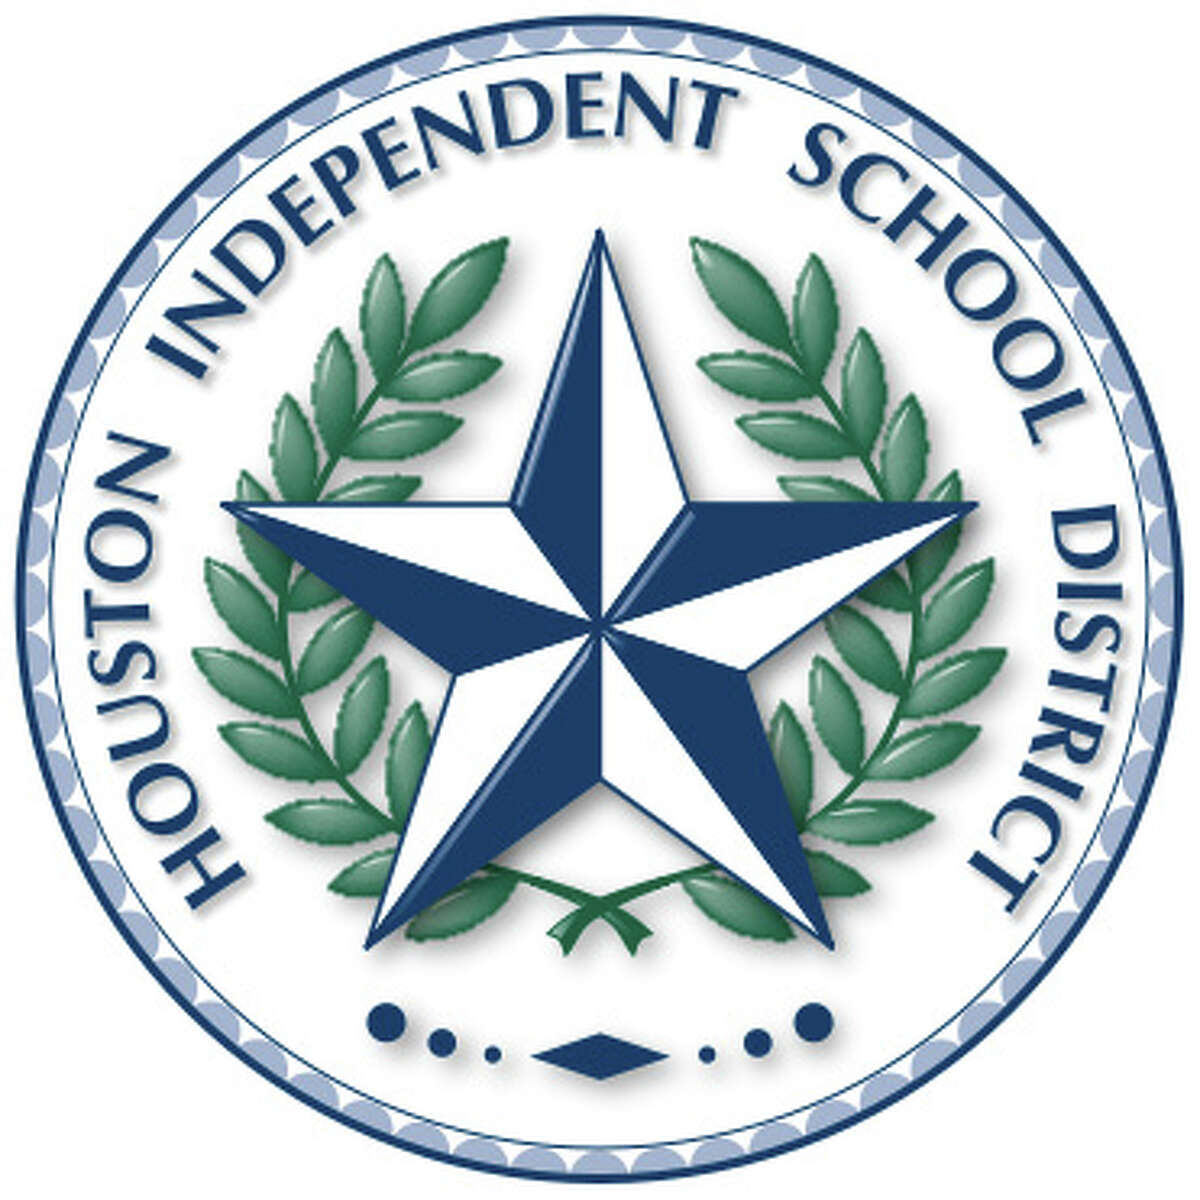 The possibility of scaling back on extracurricular activities was mentioned during a Houston ISD board meeting last week.